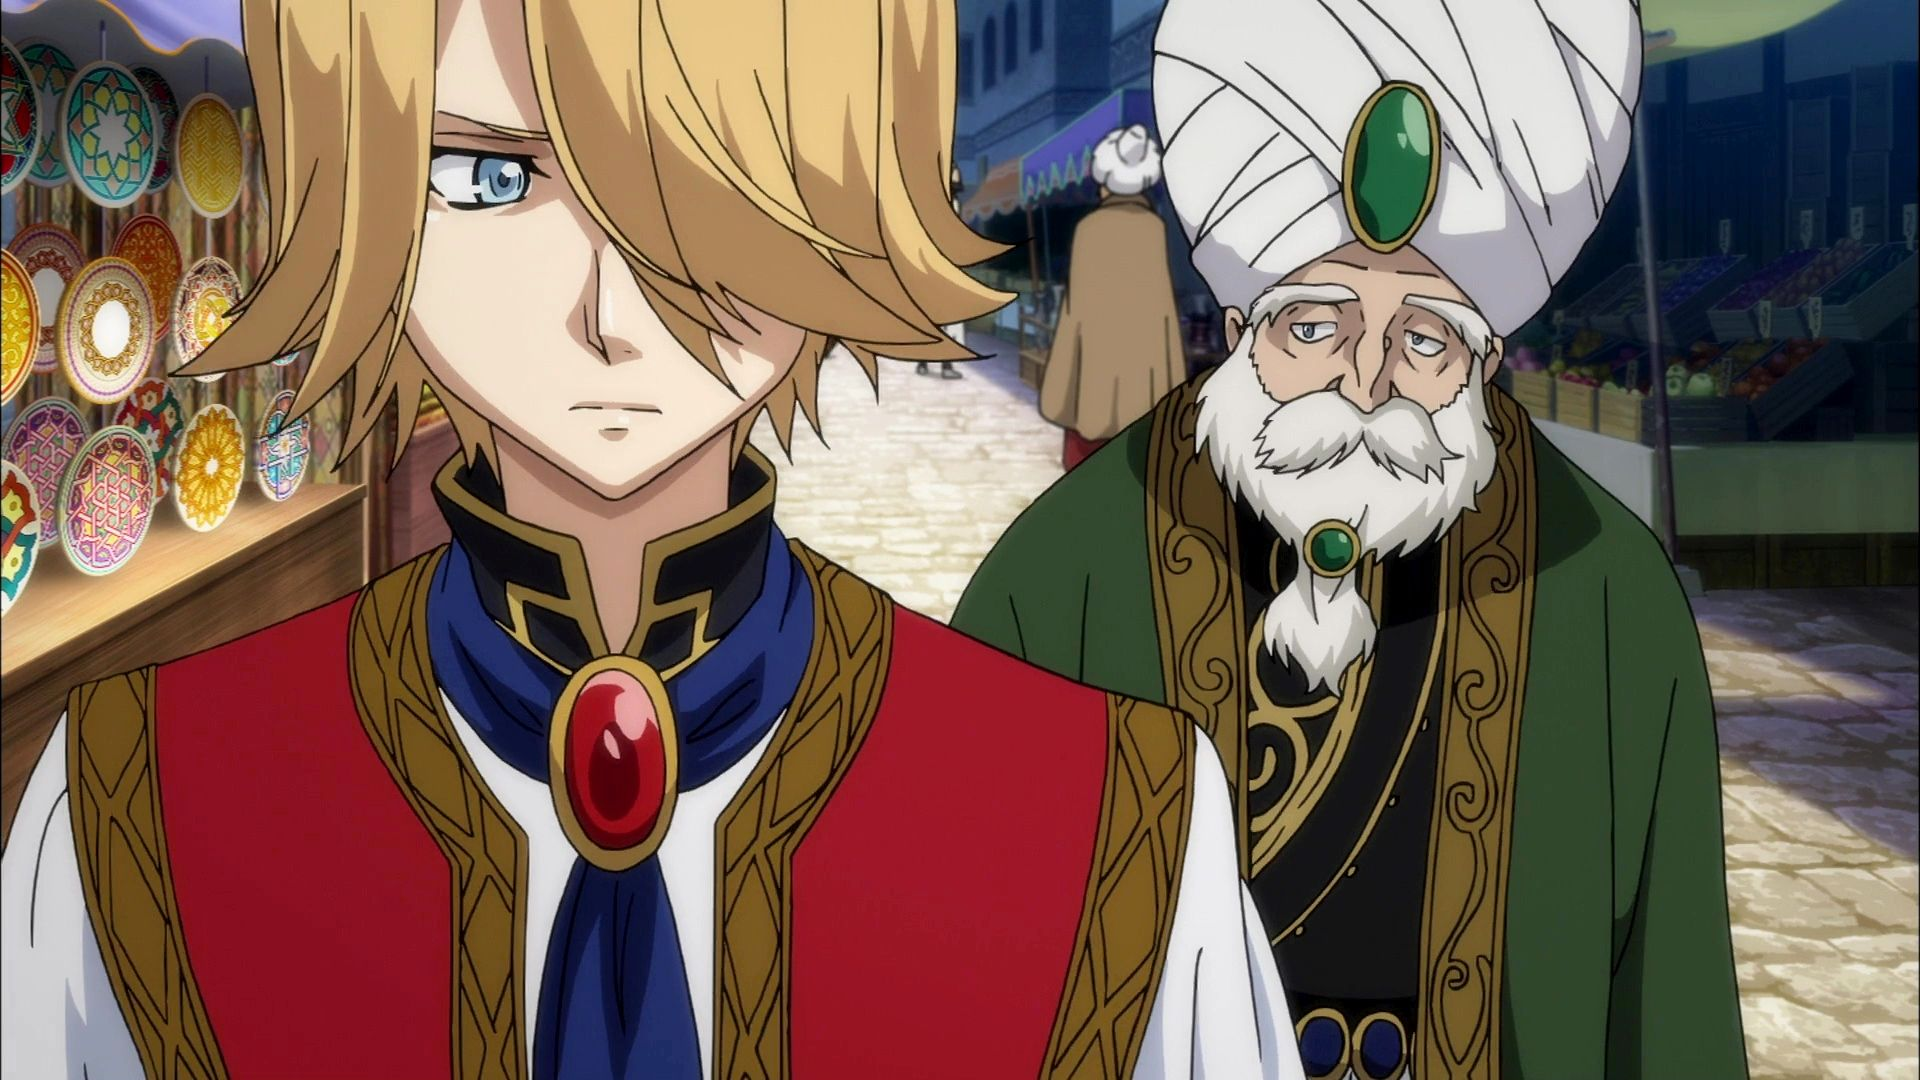 Altair A Record Of Battles Anime